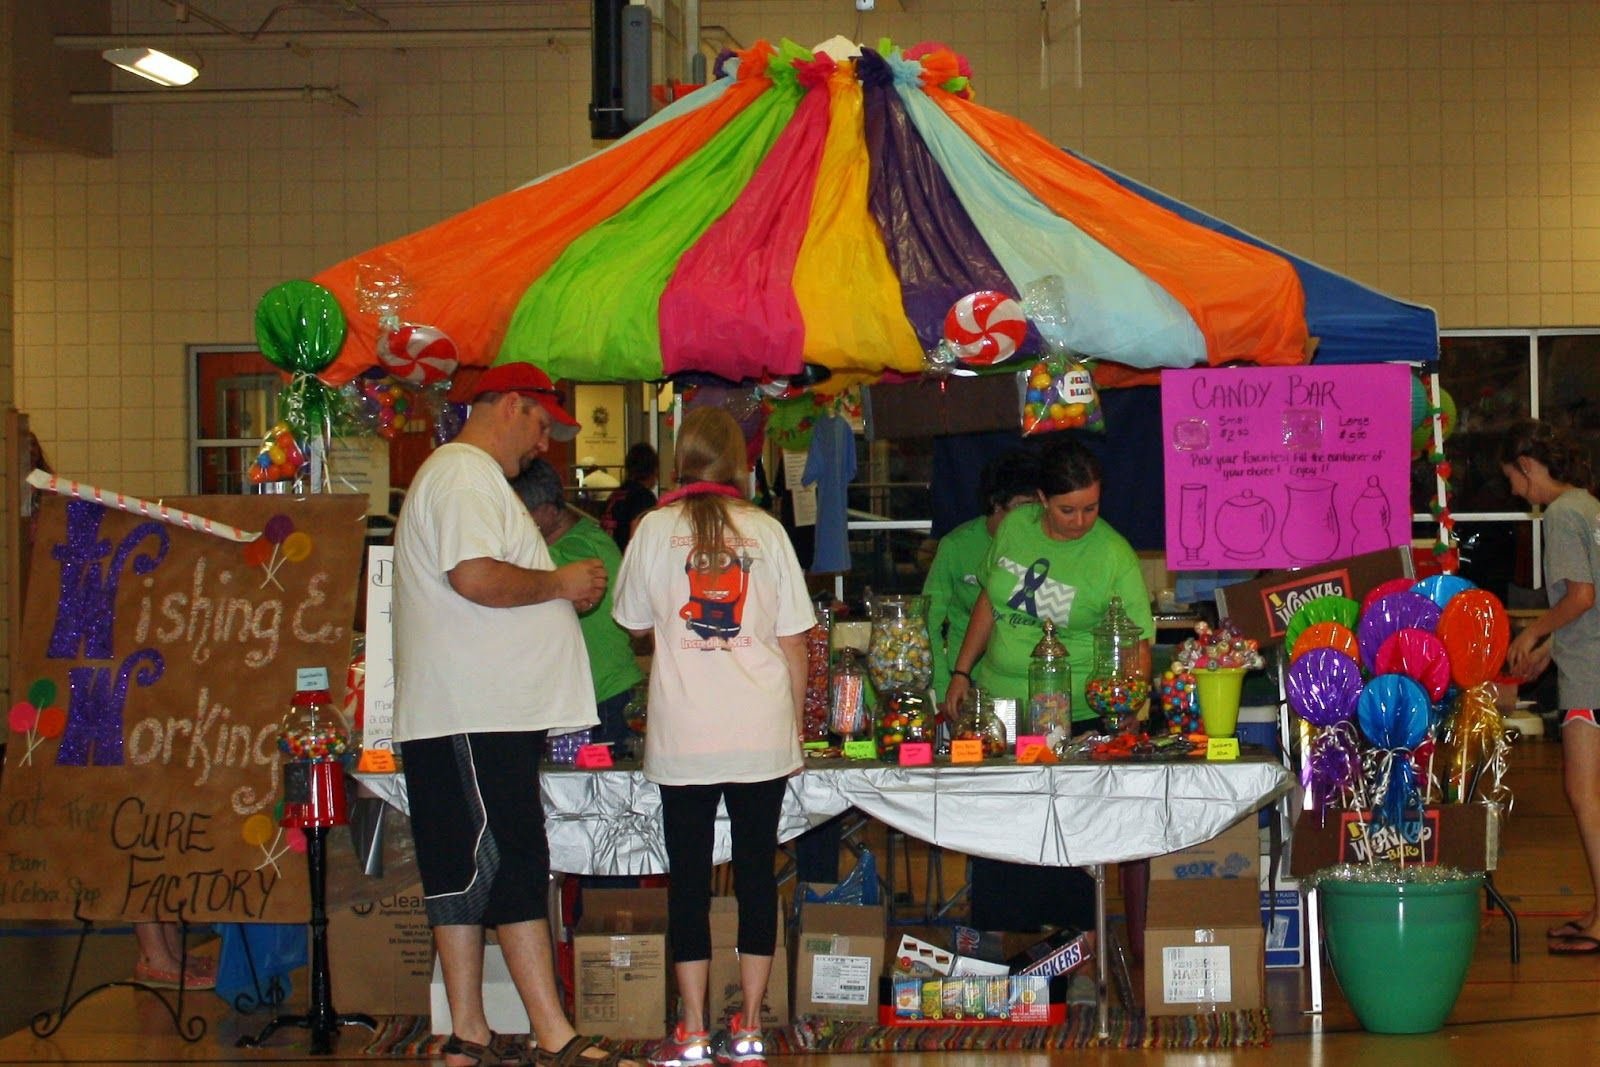 Relay For Life C&site Decorating and On Site Fundraiser Ideas & Relay For Life Campsite Decorating and On Site Fundraiser Ideas ...